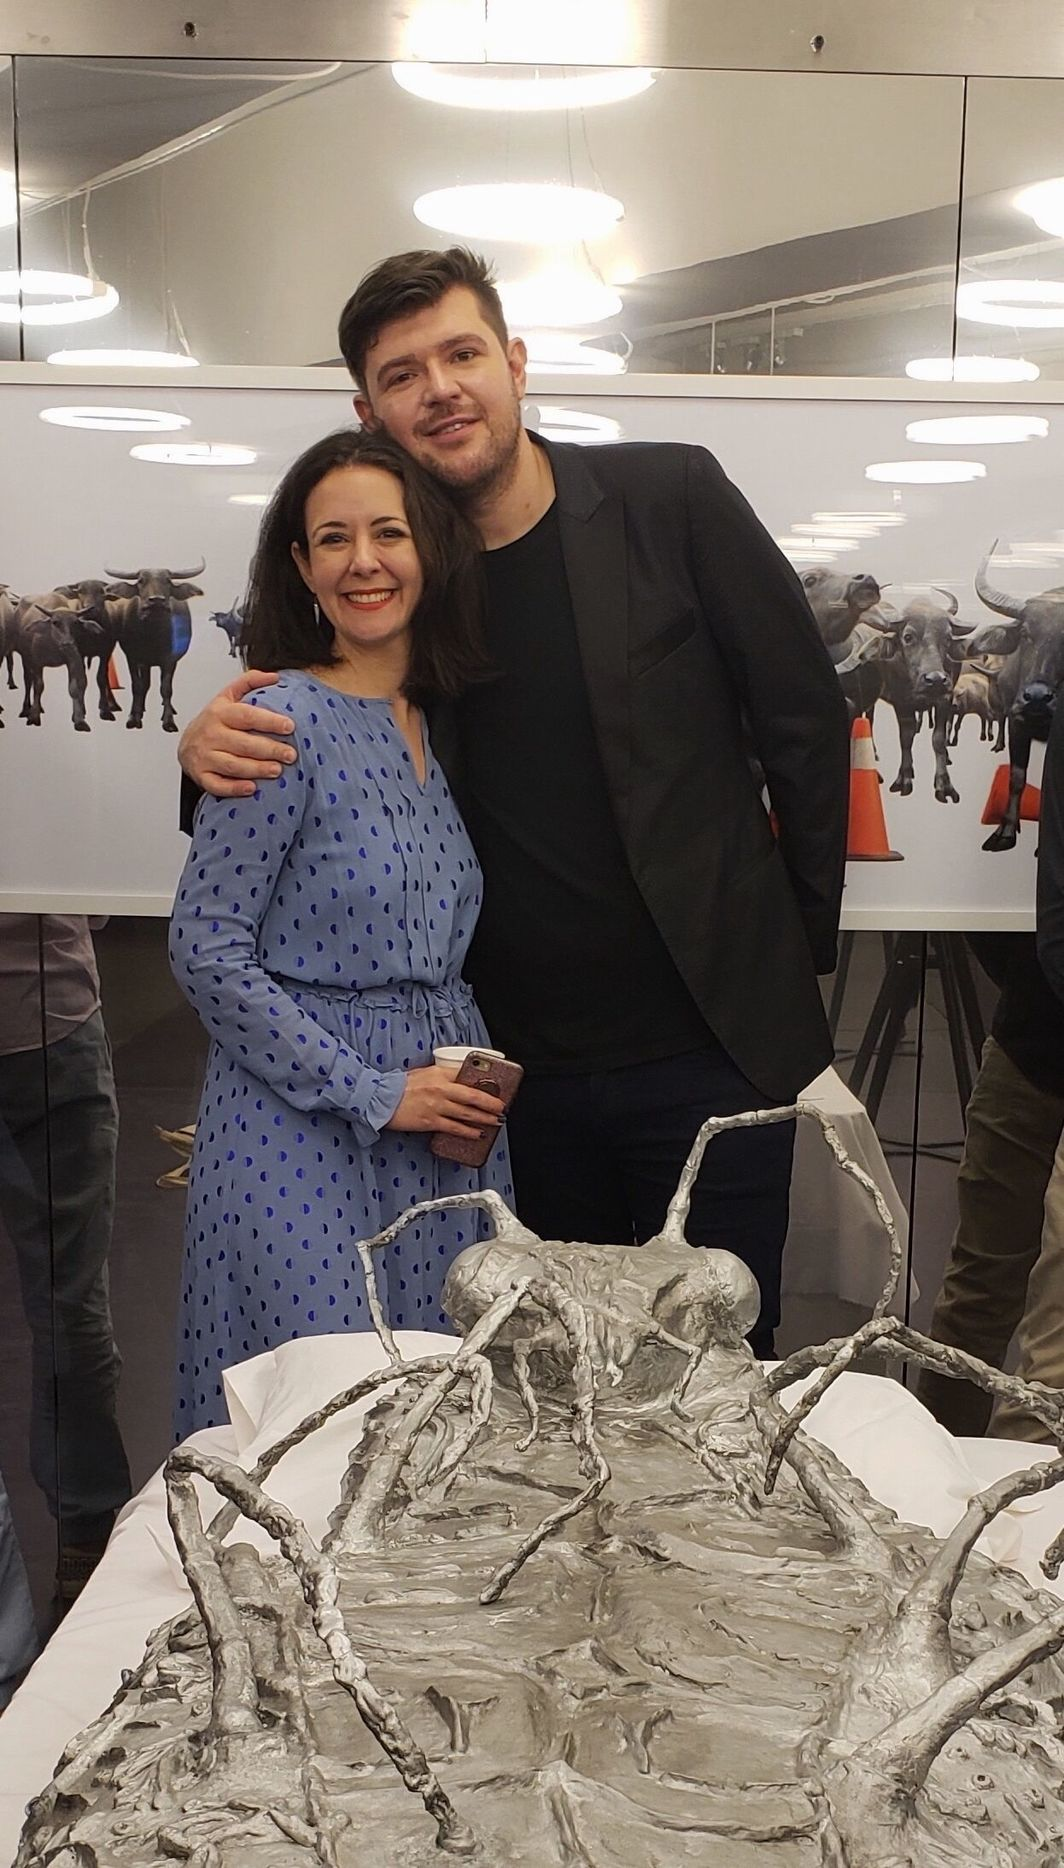 Claire Shea and Cosmin Costinas in front of Candice Lin's Metamorphosis in Space (2013) at Para Site Gallery. Photo credit: Kee Foong.